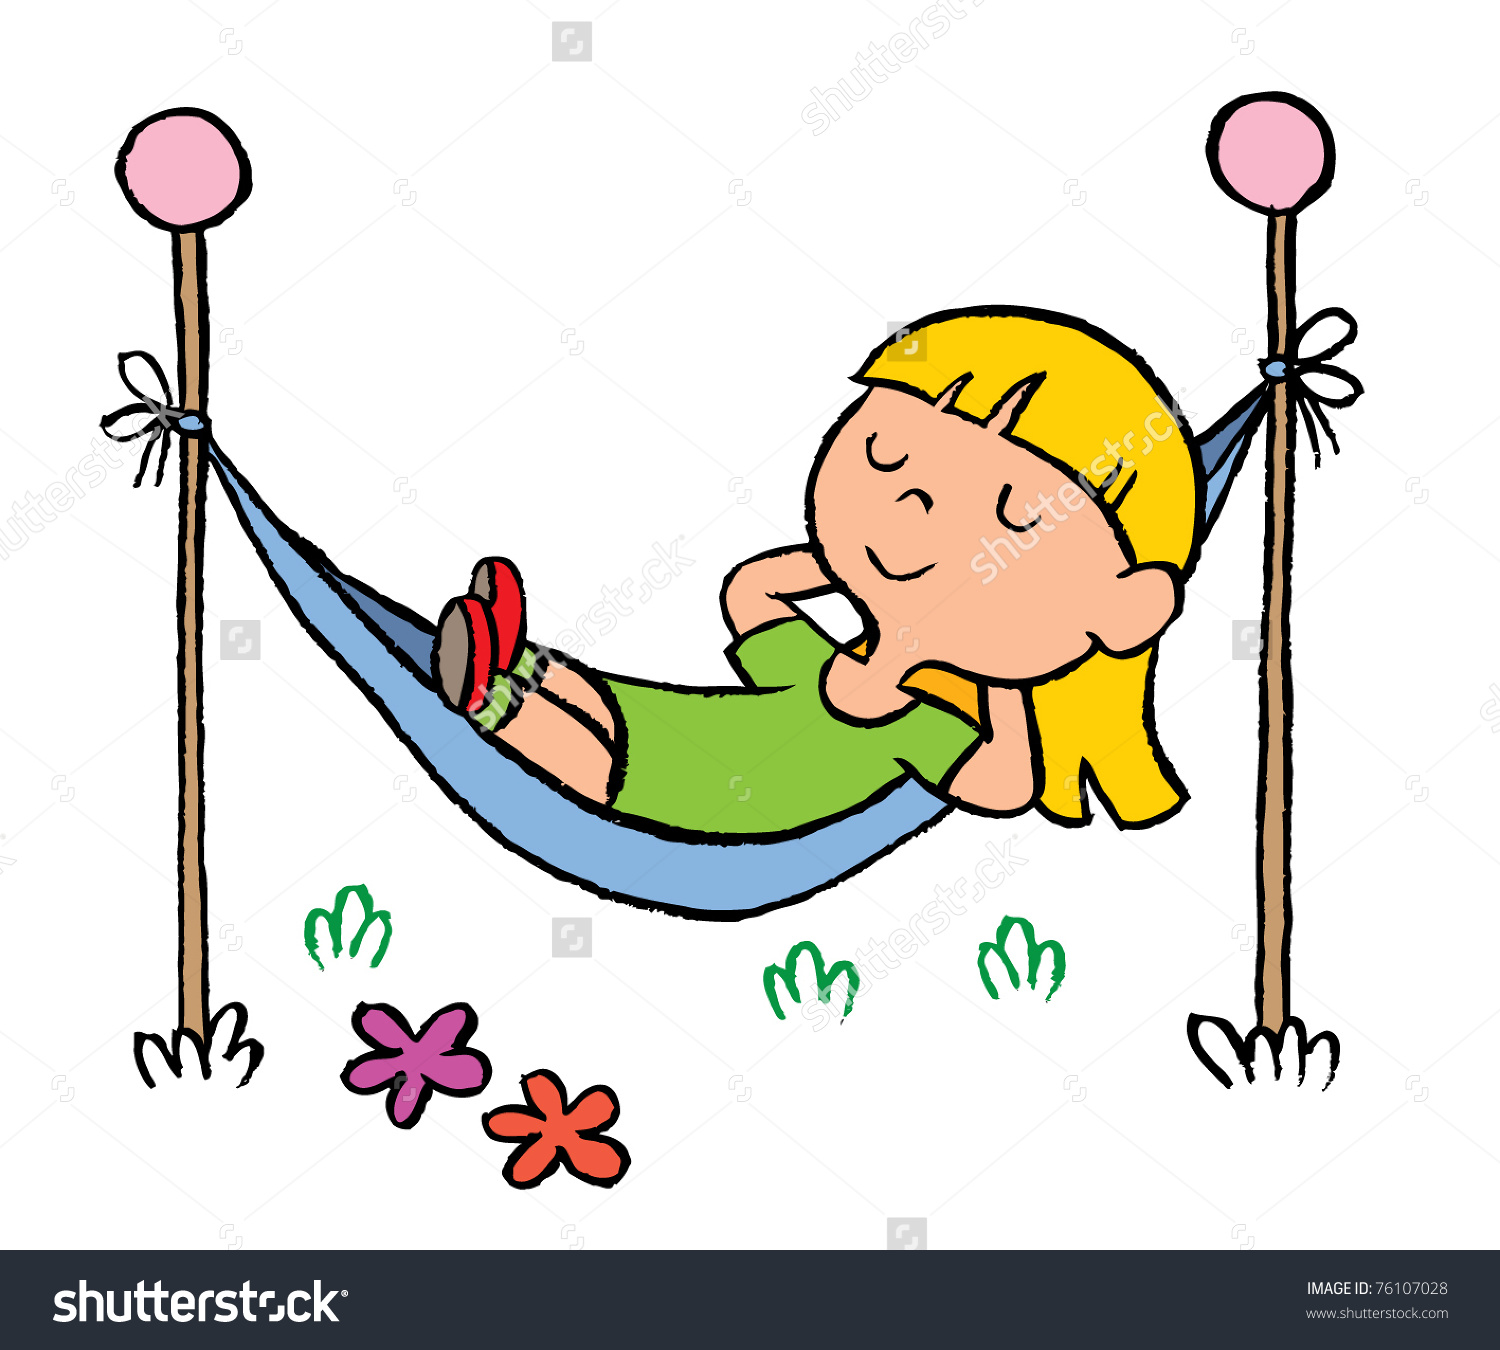 Free To Use Clipart People Relaxing 20 Free Cliparts